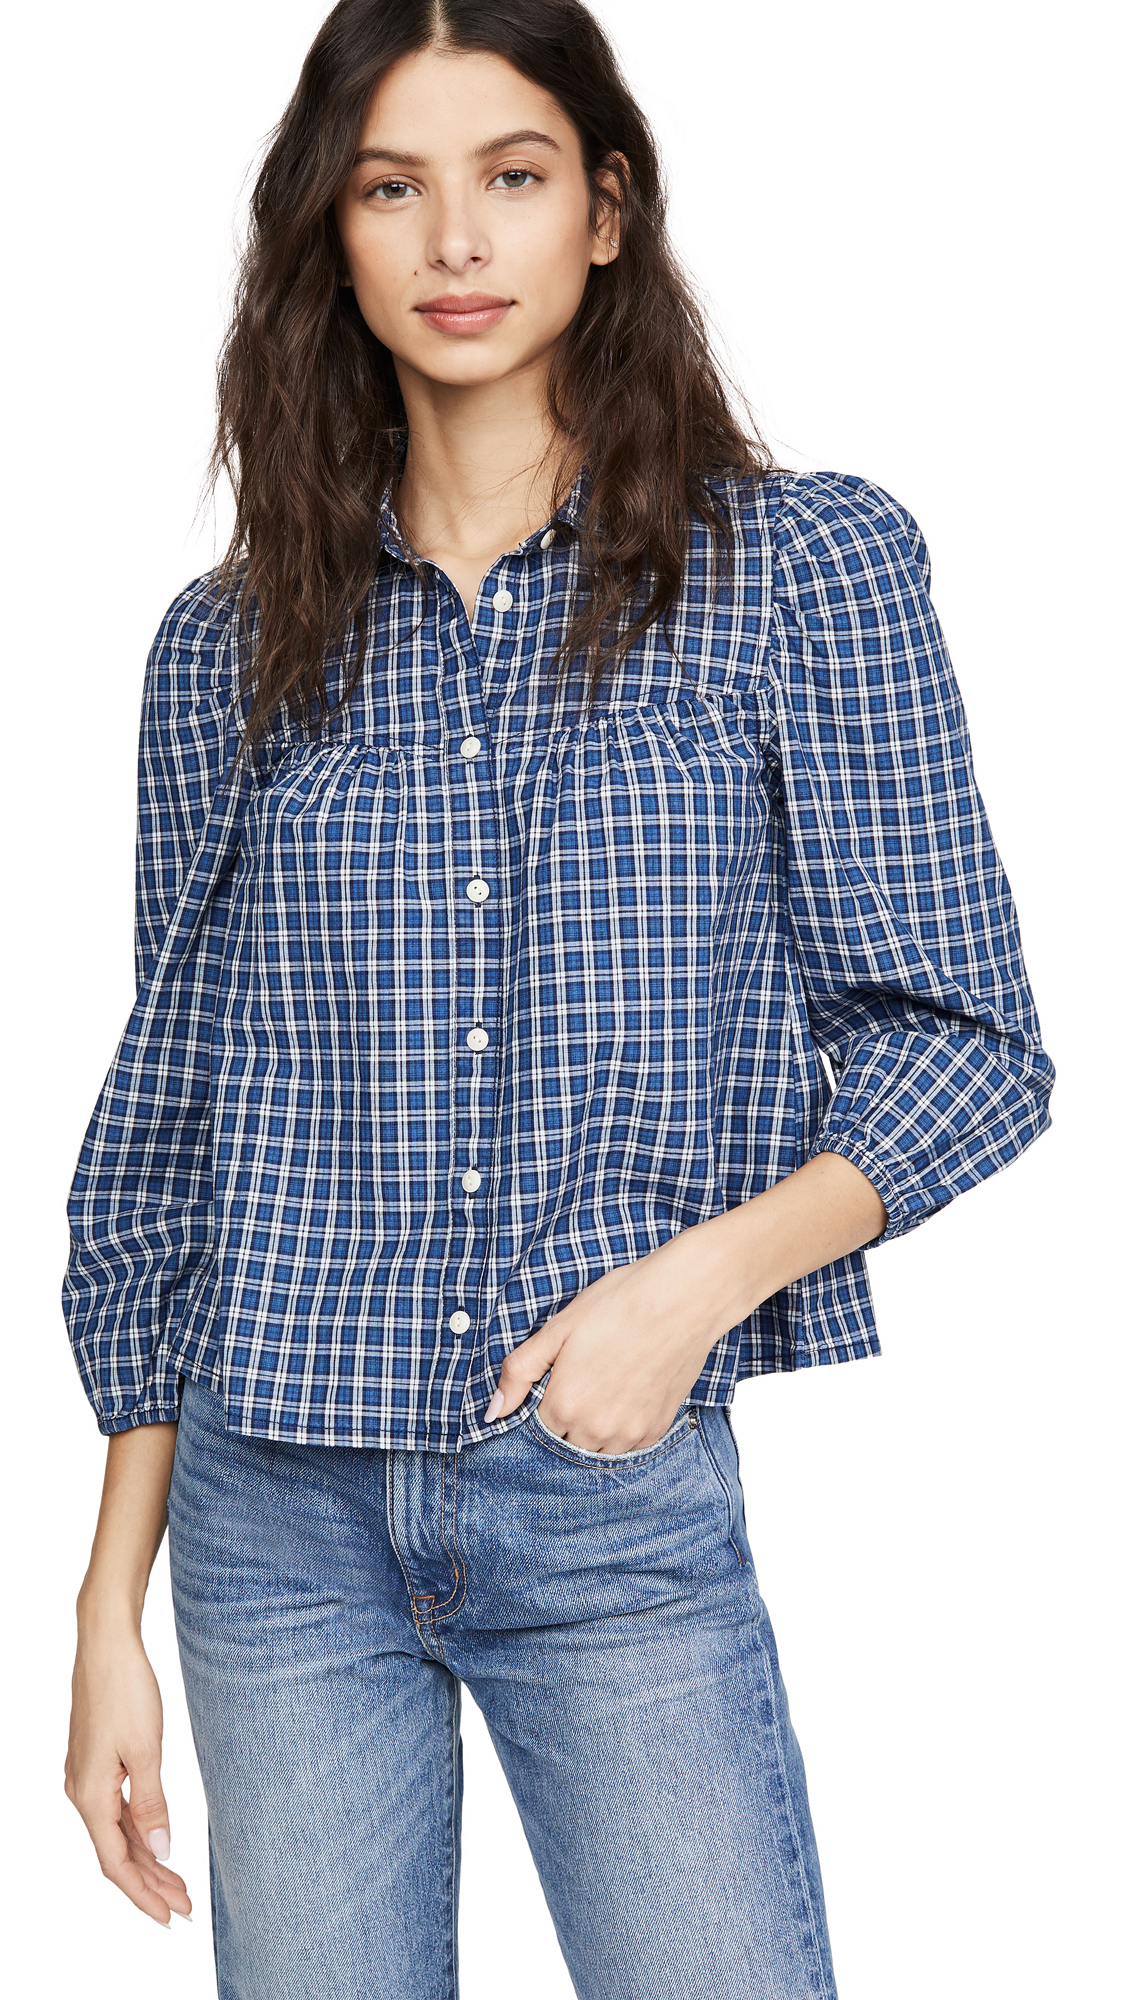 Madewell Western Long Sleeve Button Down - 30% Off Sale